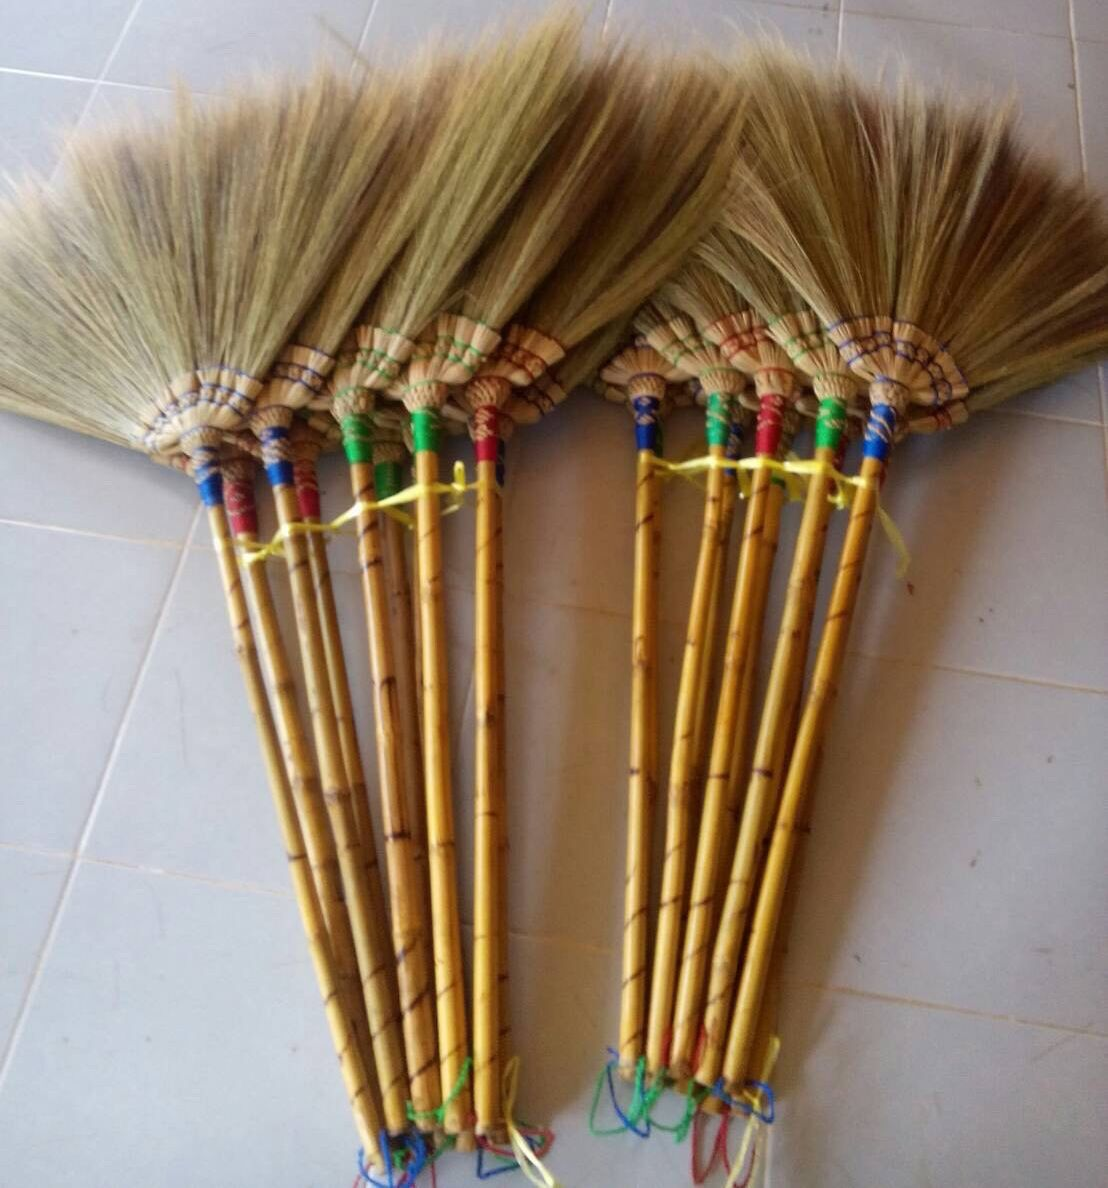 Excited To Share The Latest Addition To My Etsy Shop Thailand Flower Broom With 100 Original Thailand Handmade And E Brooms And Brushes Handmade Broom Broom